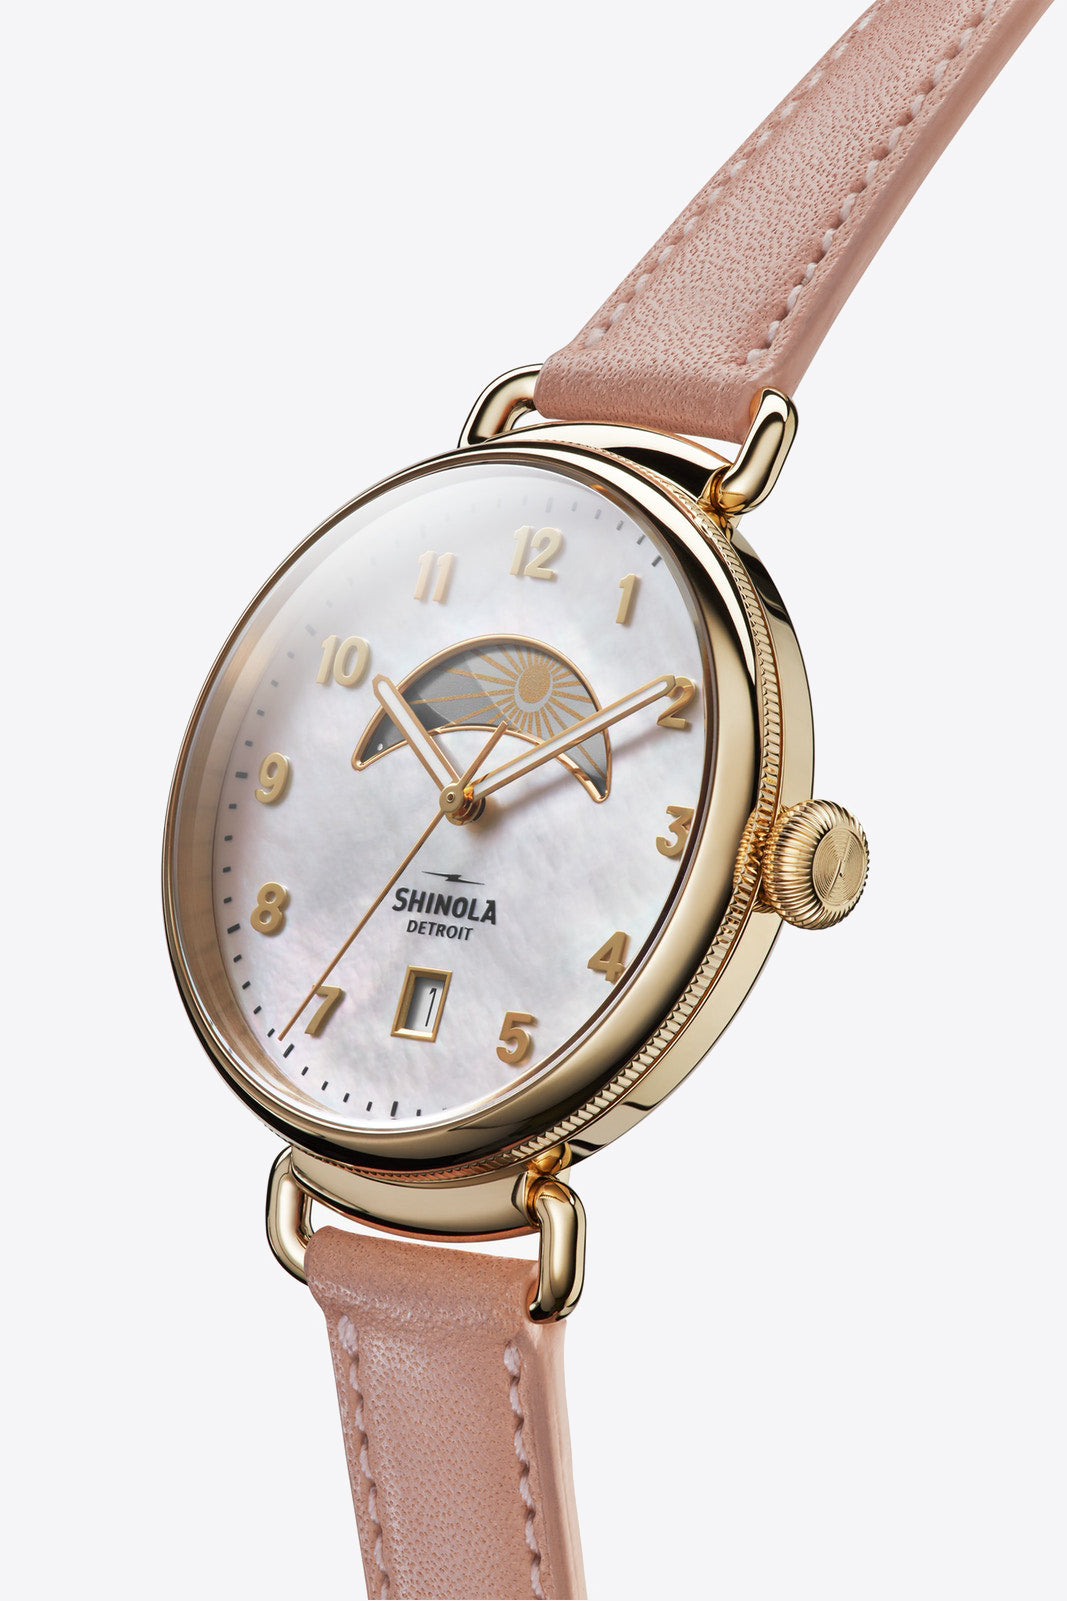 Shinola Canfield 38mm Watch in Rose - Vert & Vogue